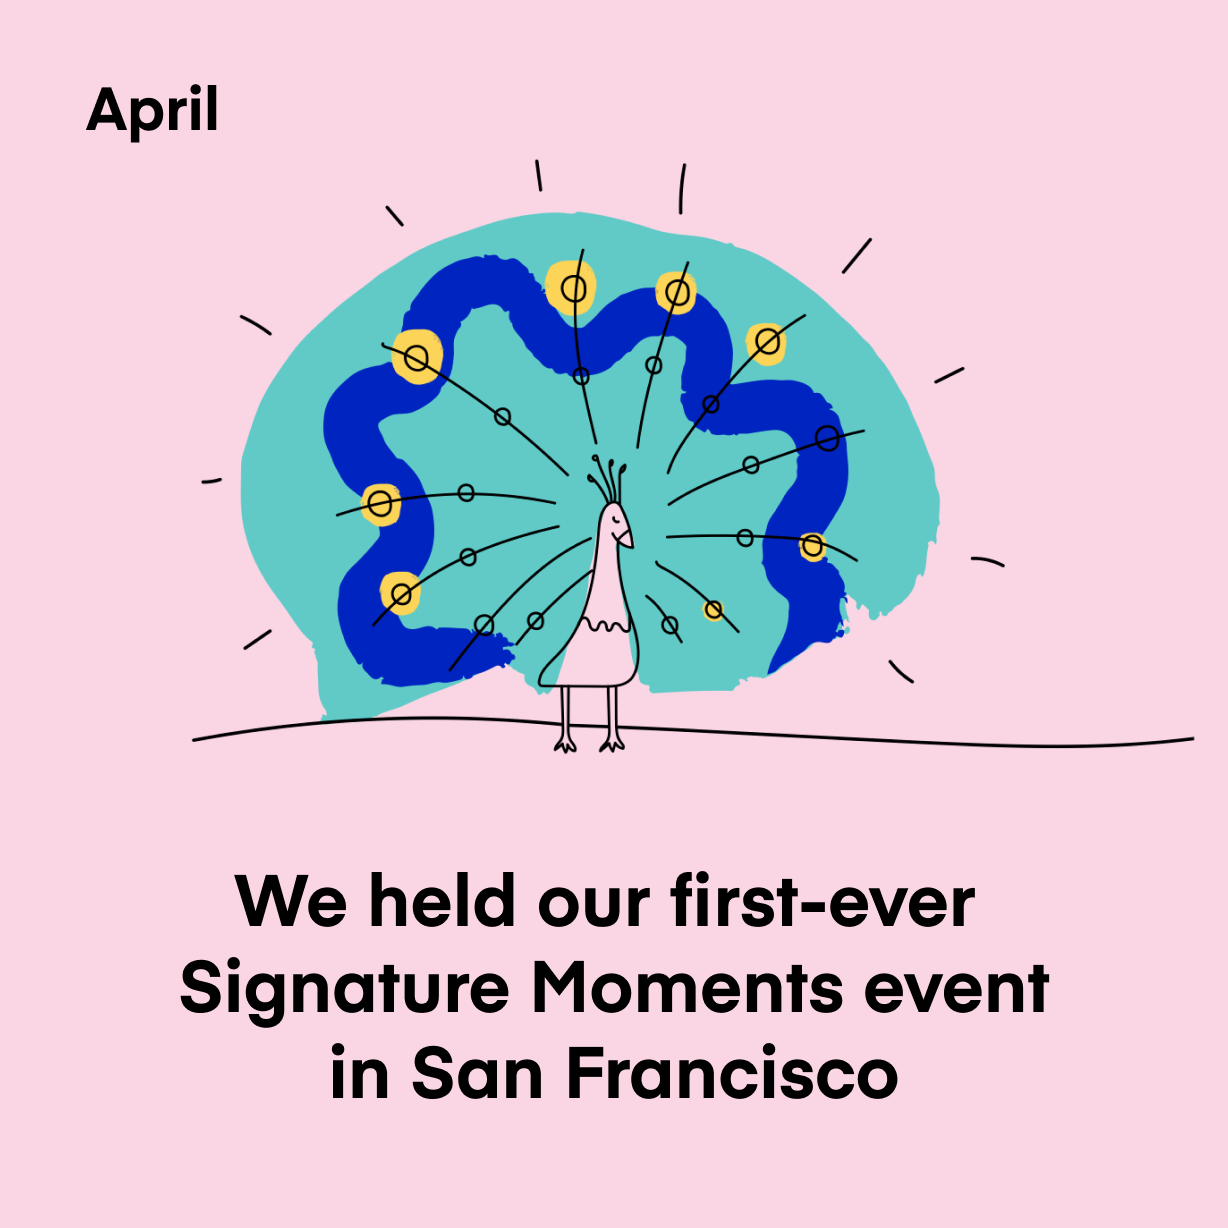 We held our first-ever Signature Moments event in San Francisco